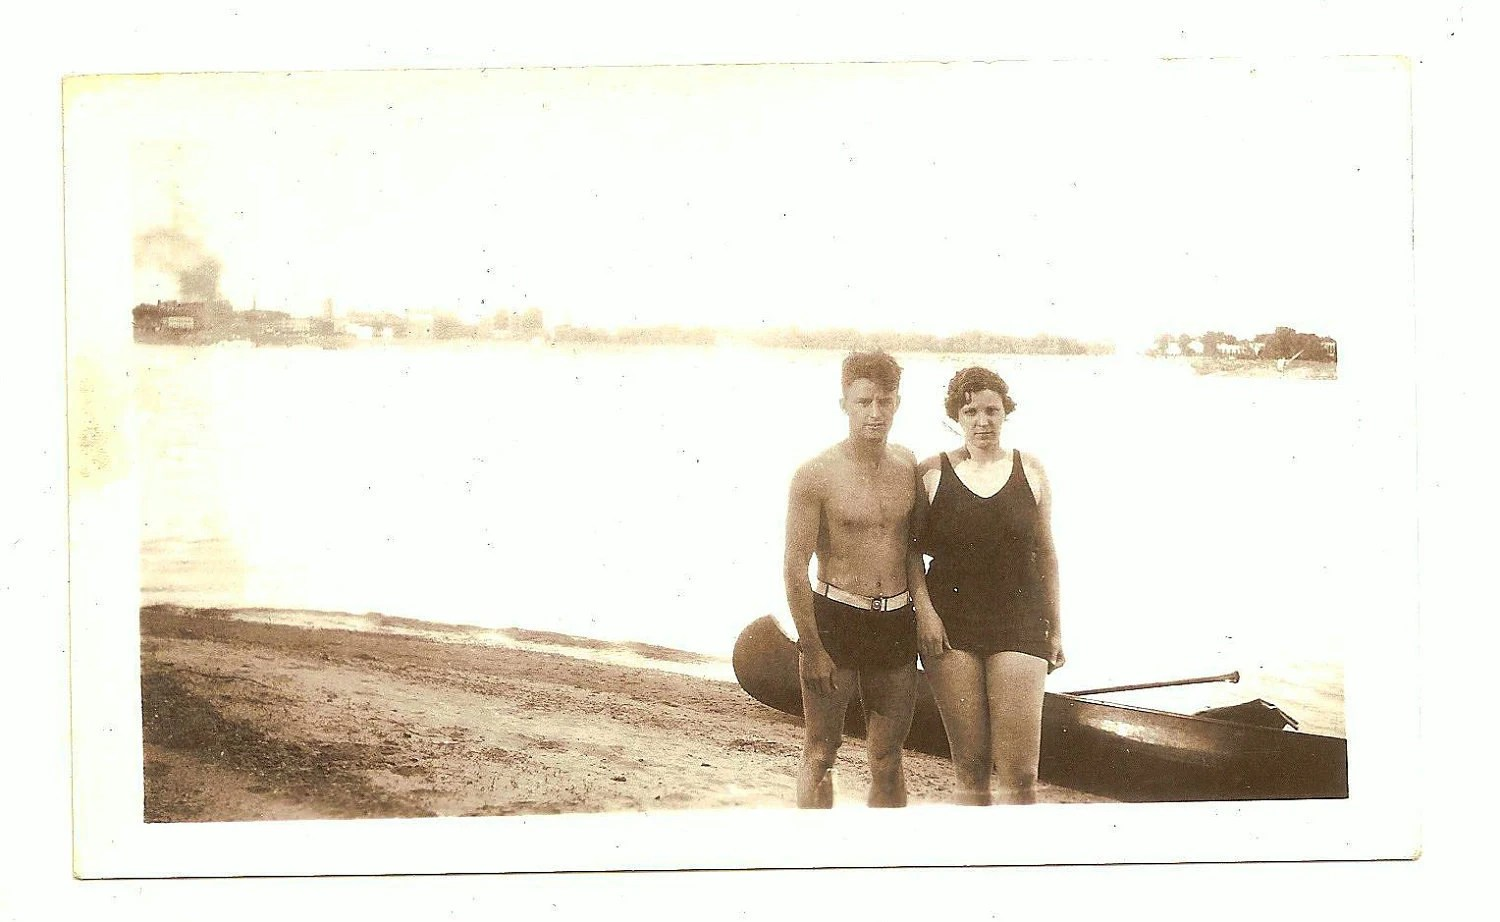 Vintage Photo Shirtless Man Woman Swimsuit Canoe Beach 1936